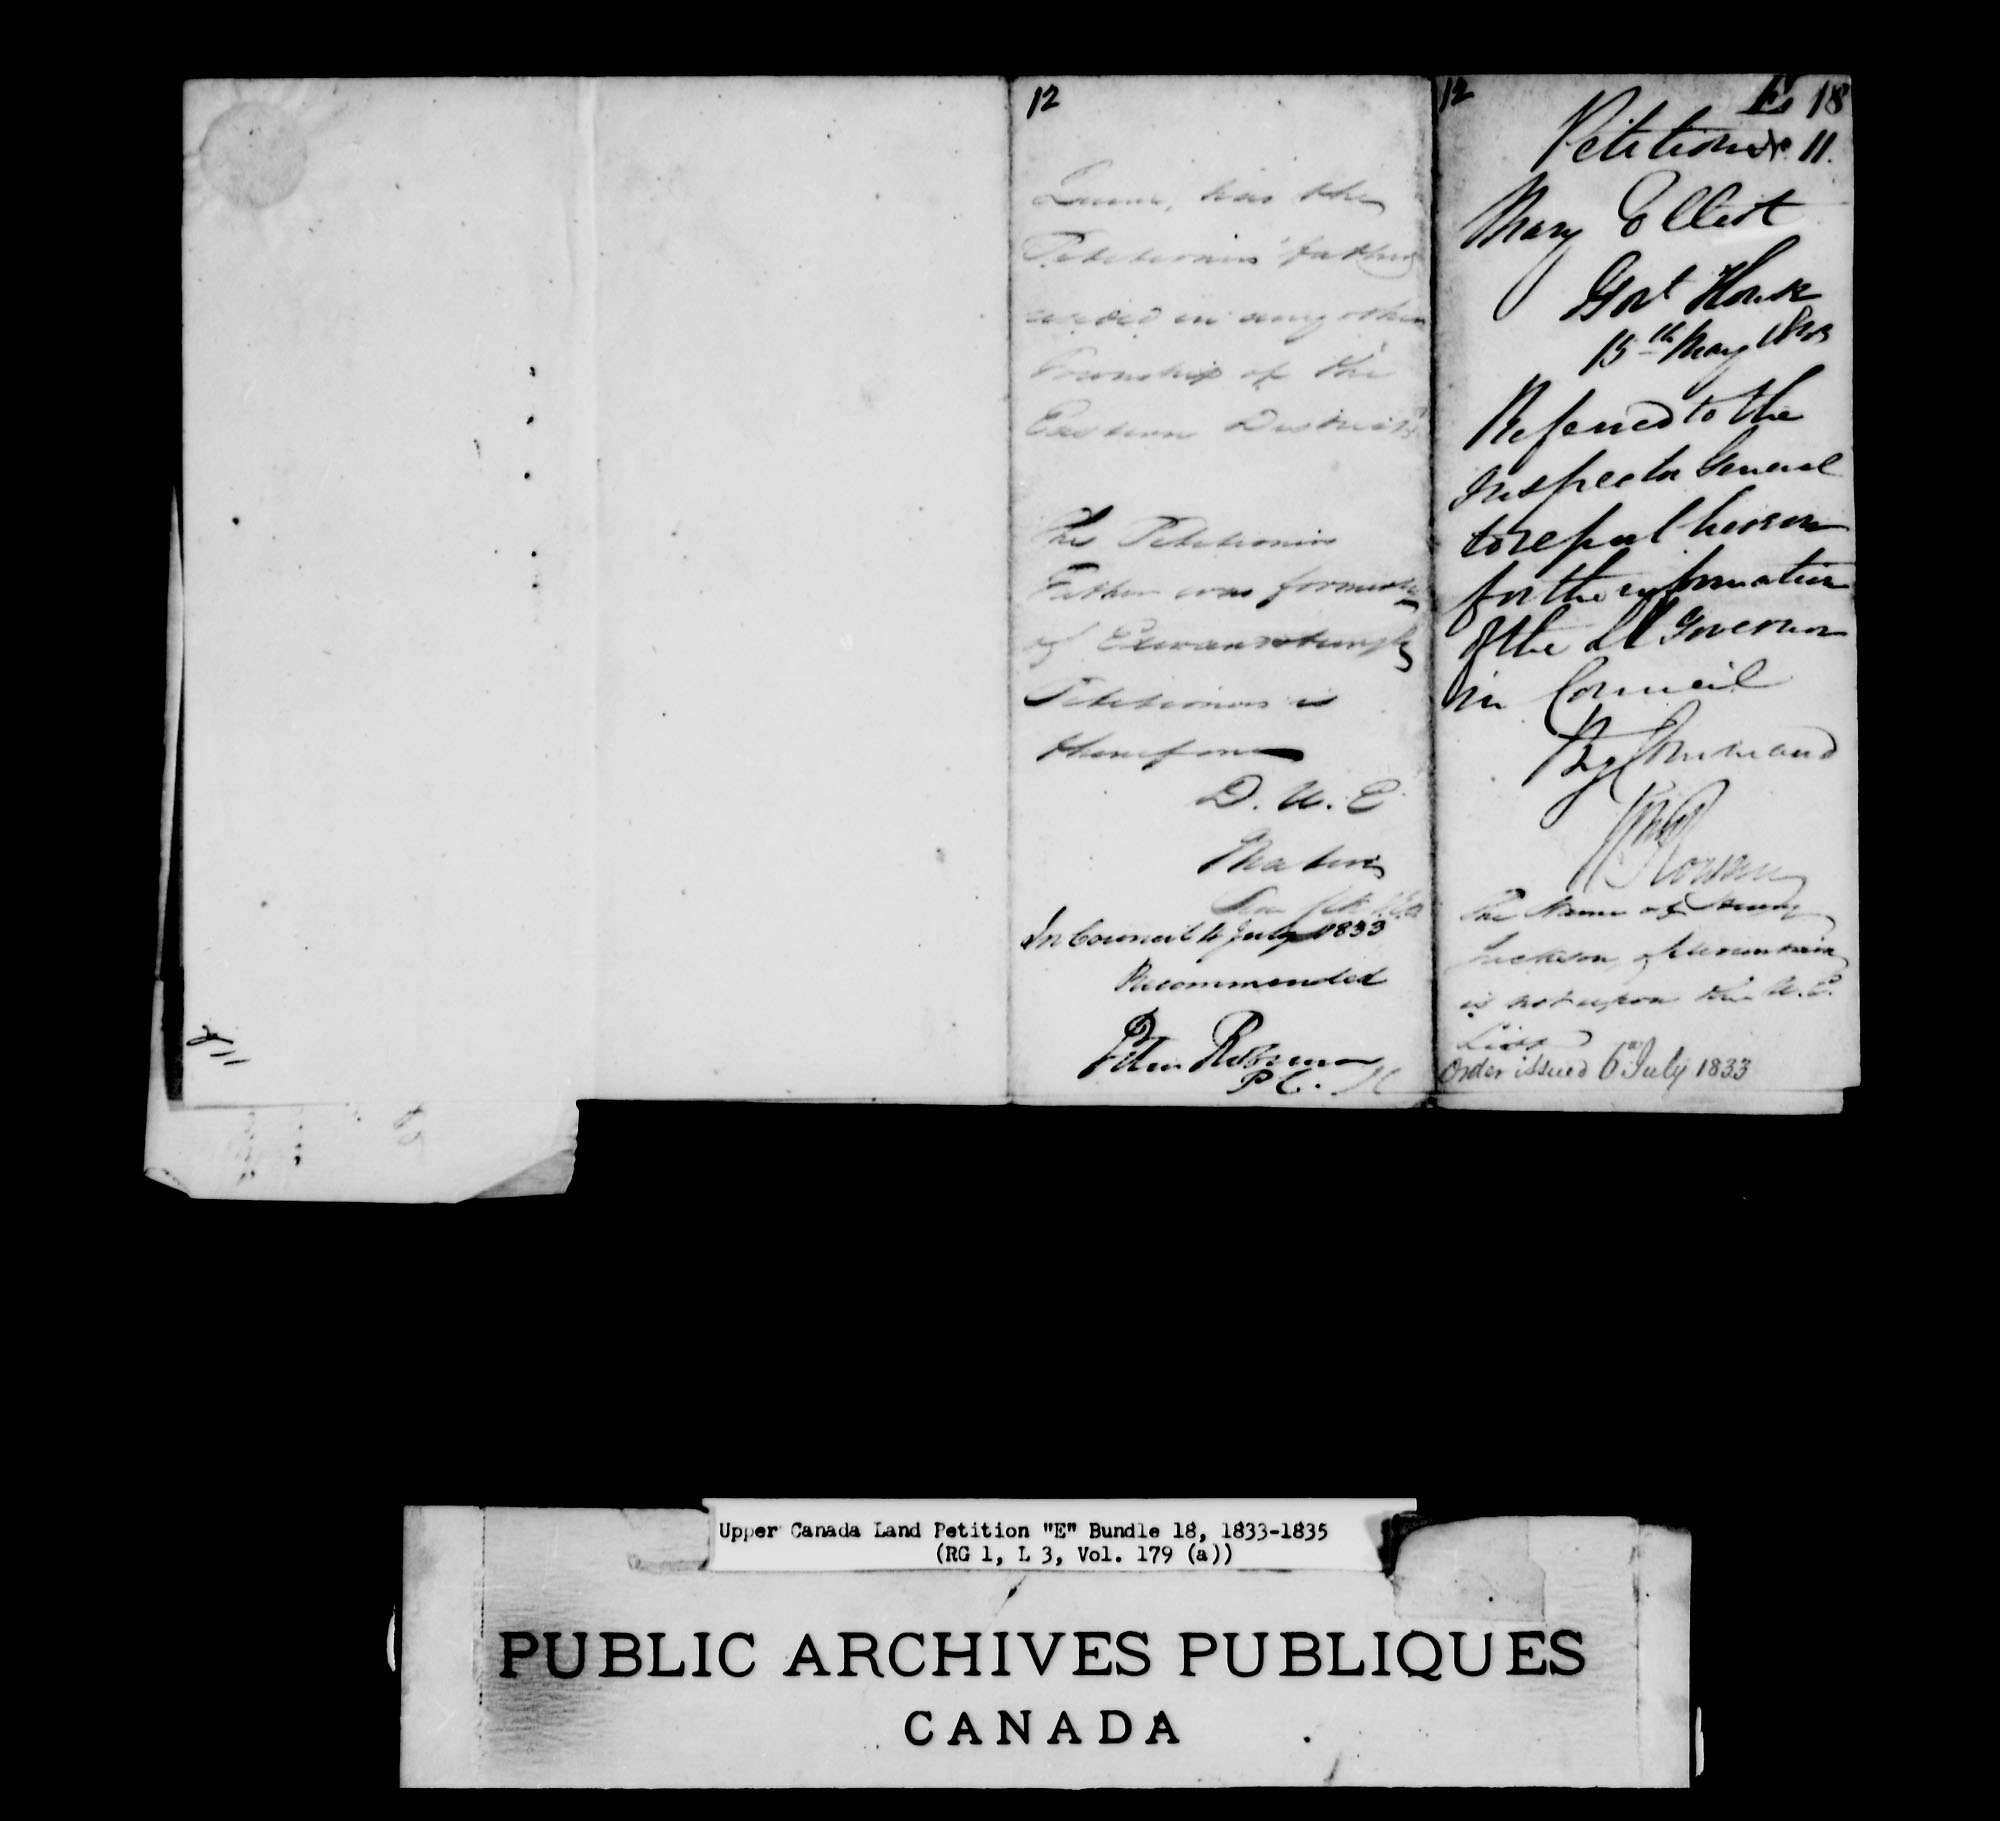 Title: Upper Canada Land Petitions (1763-1865) - Mikan Number: 205131 - Microform: c-1889